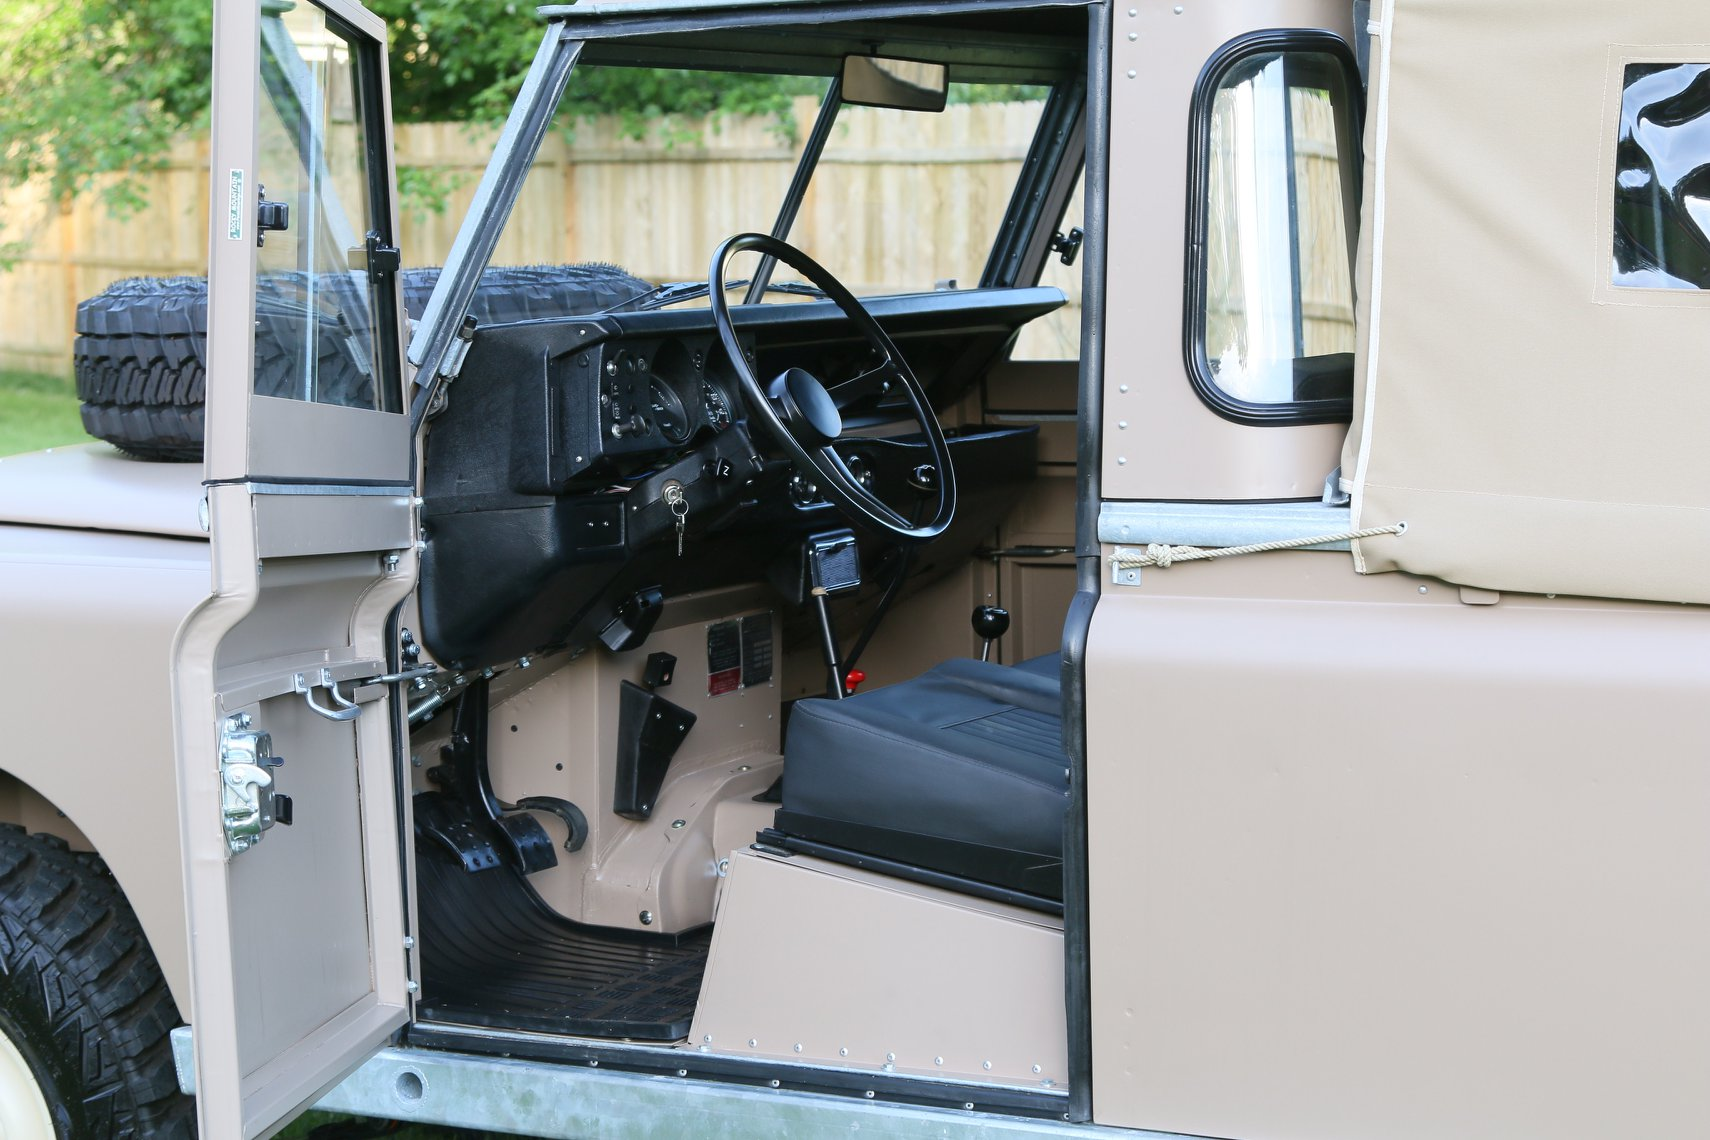 1972 Land Rover Series II 109 Inch Pickup Restoration Photo s